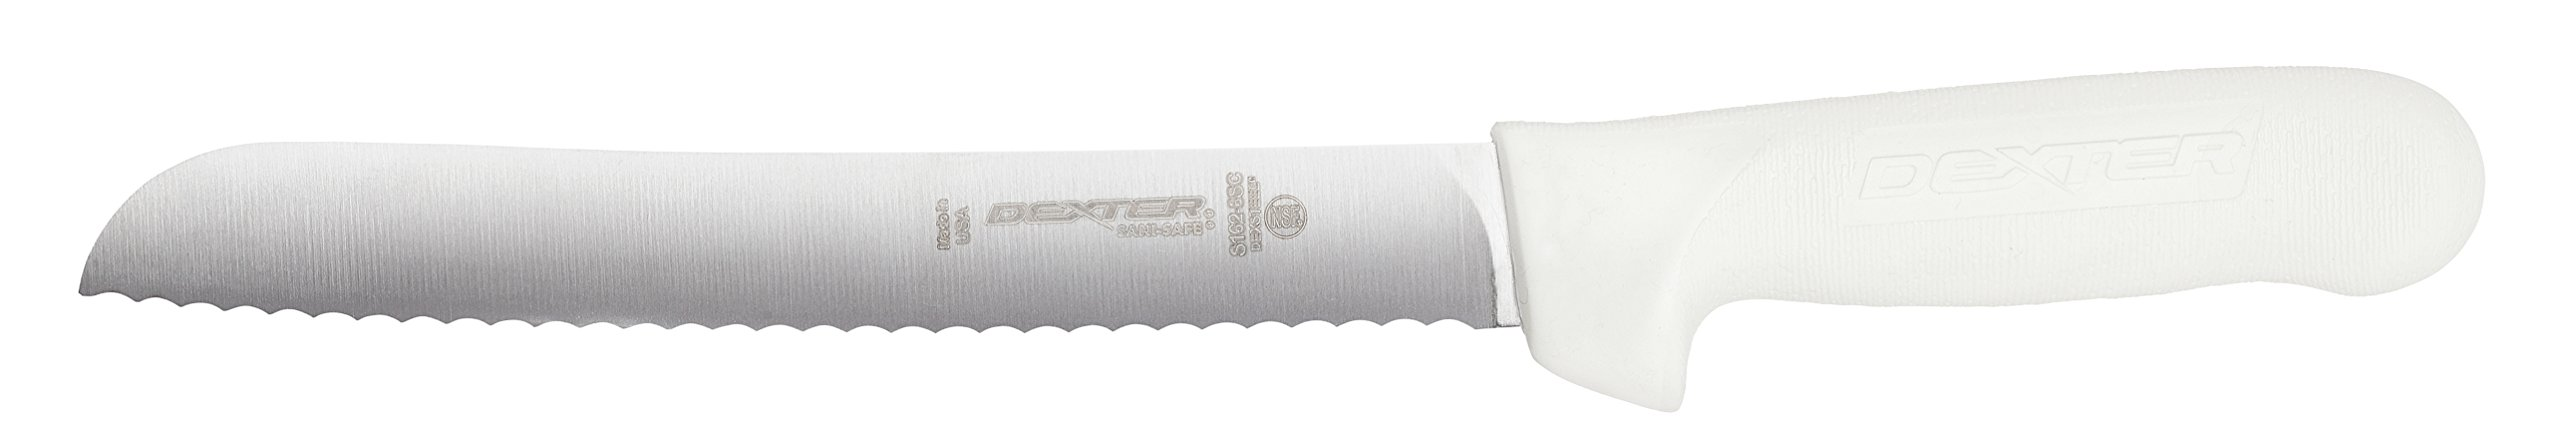 Dexter-Russell Sani-Safe Scalloped Bread Knife, Carbon Steel Blade, 8-Inch